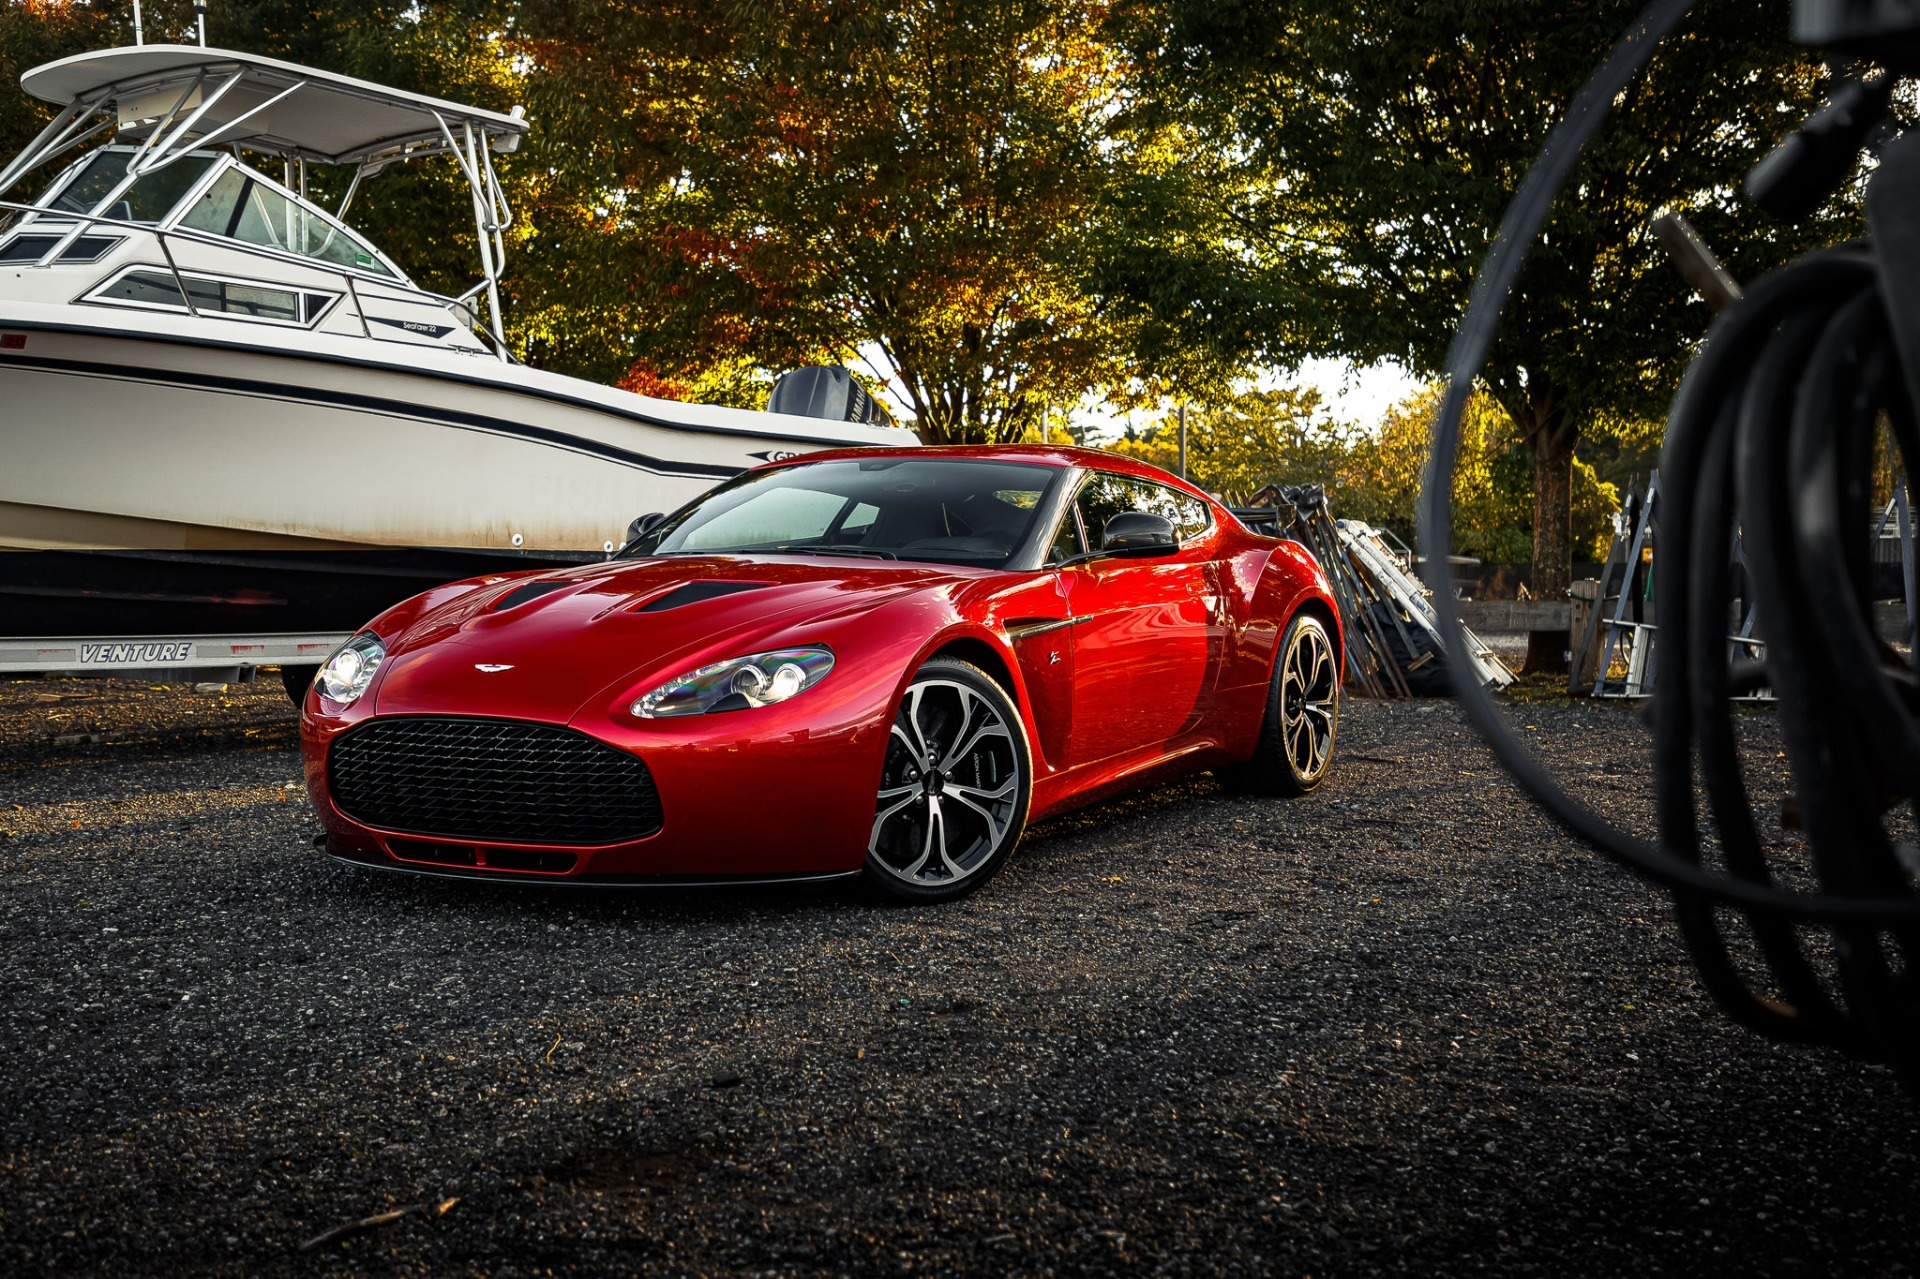 Used 2013 Aston Martin V12 Zagato Coupe